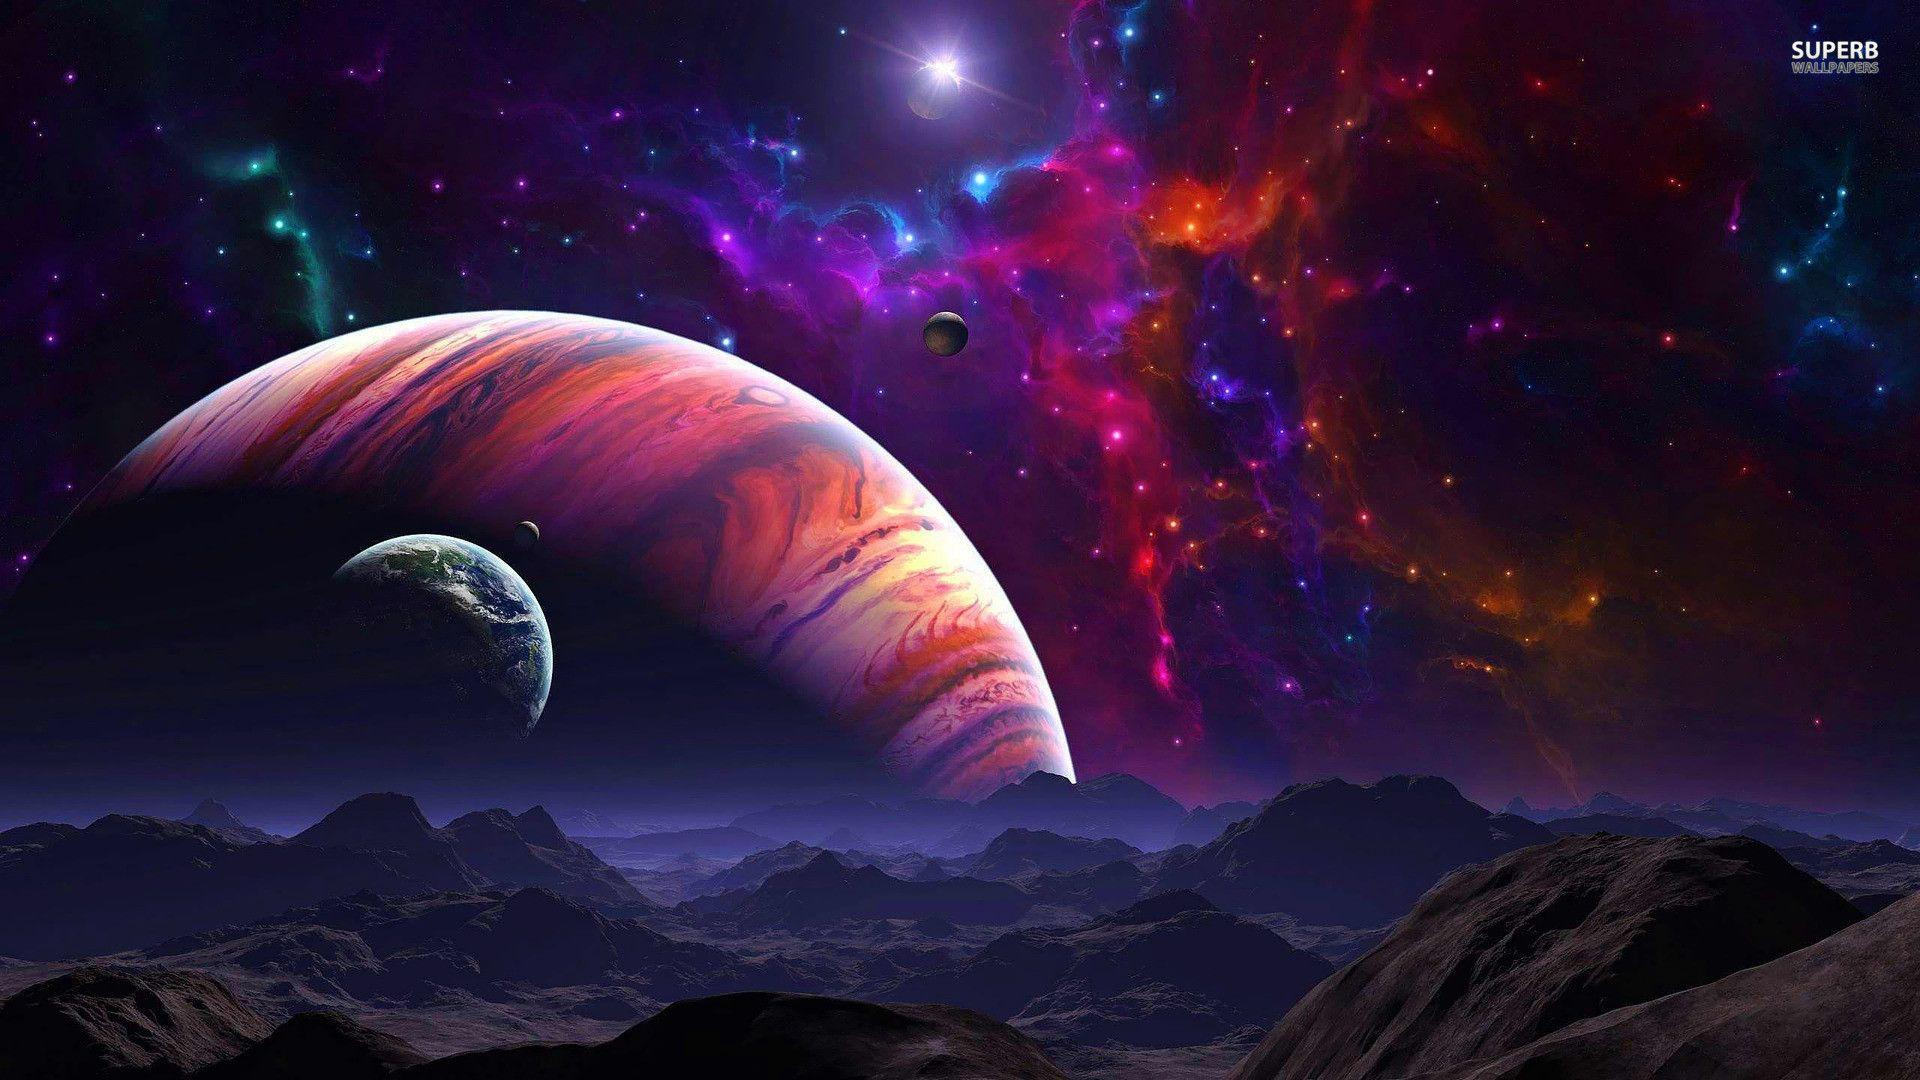 Purple Space Wallpaper 1920x1080 Pictures 5 Hd Wallpapers - Hd Planets , HD Wallpaper & Backgrounds